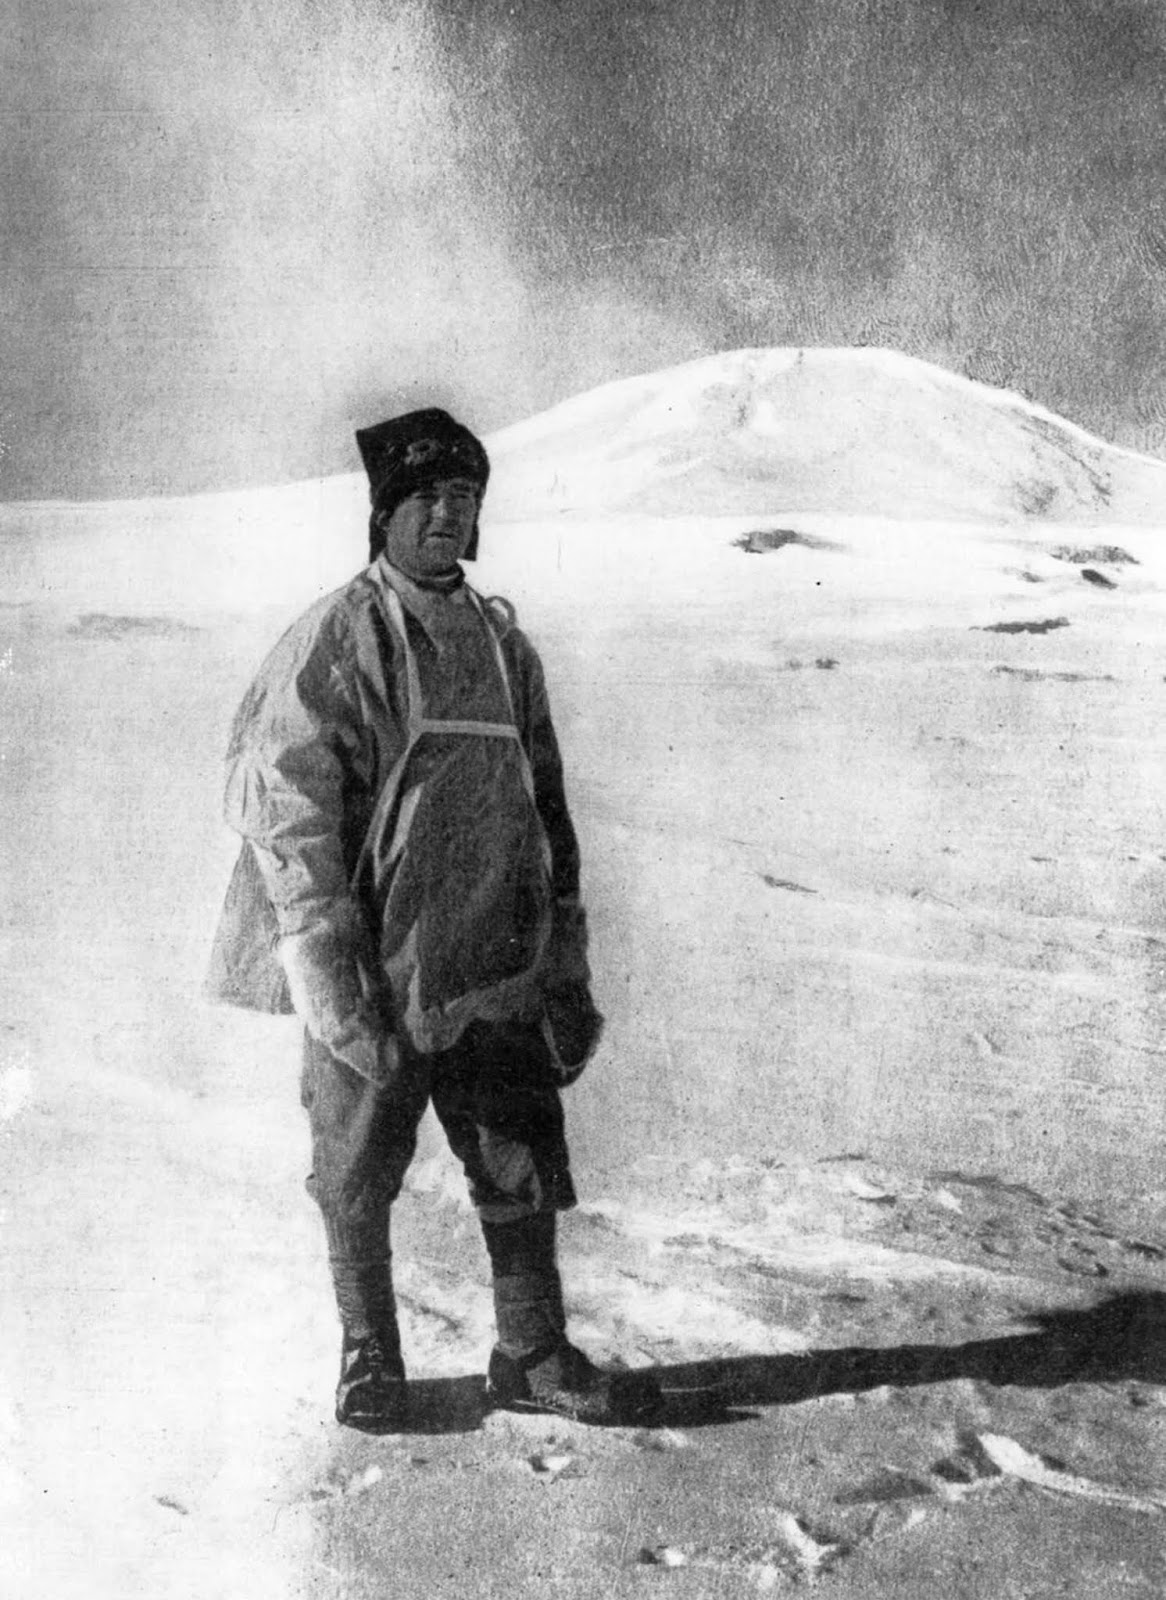 Capt. Scott outfitted for his push to the South Pole. November 1911.